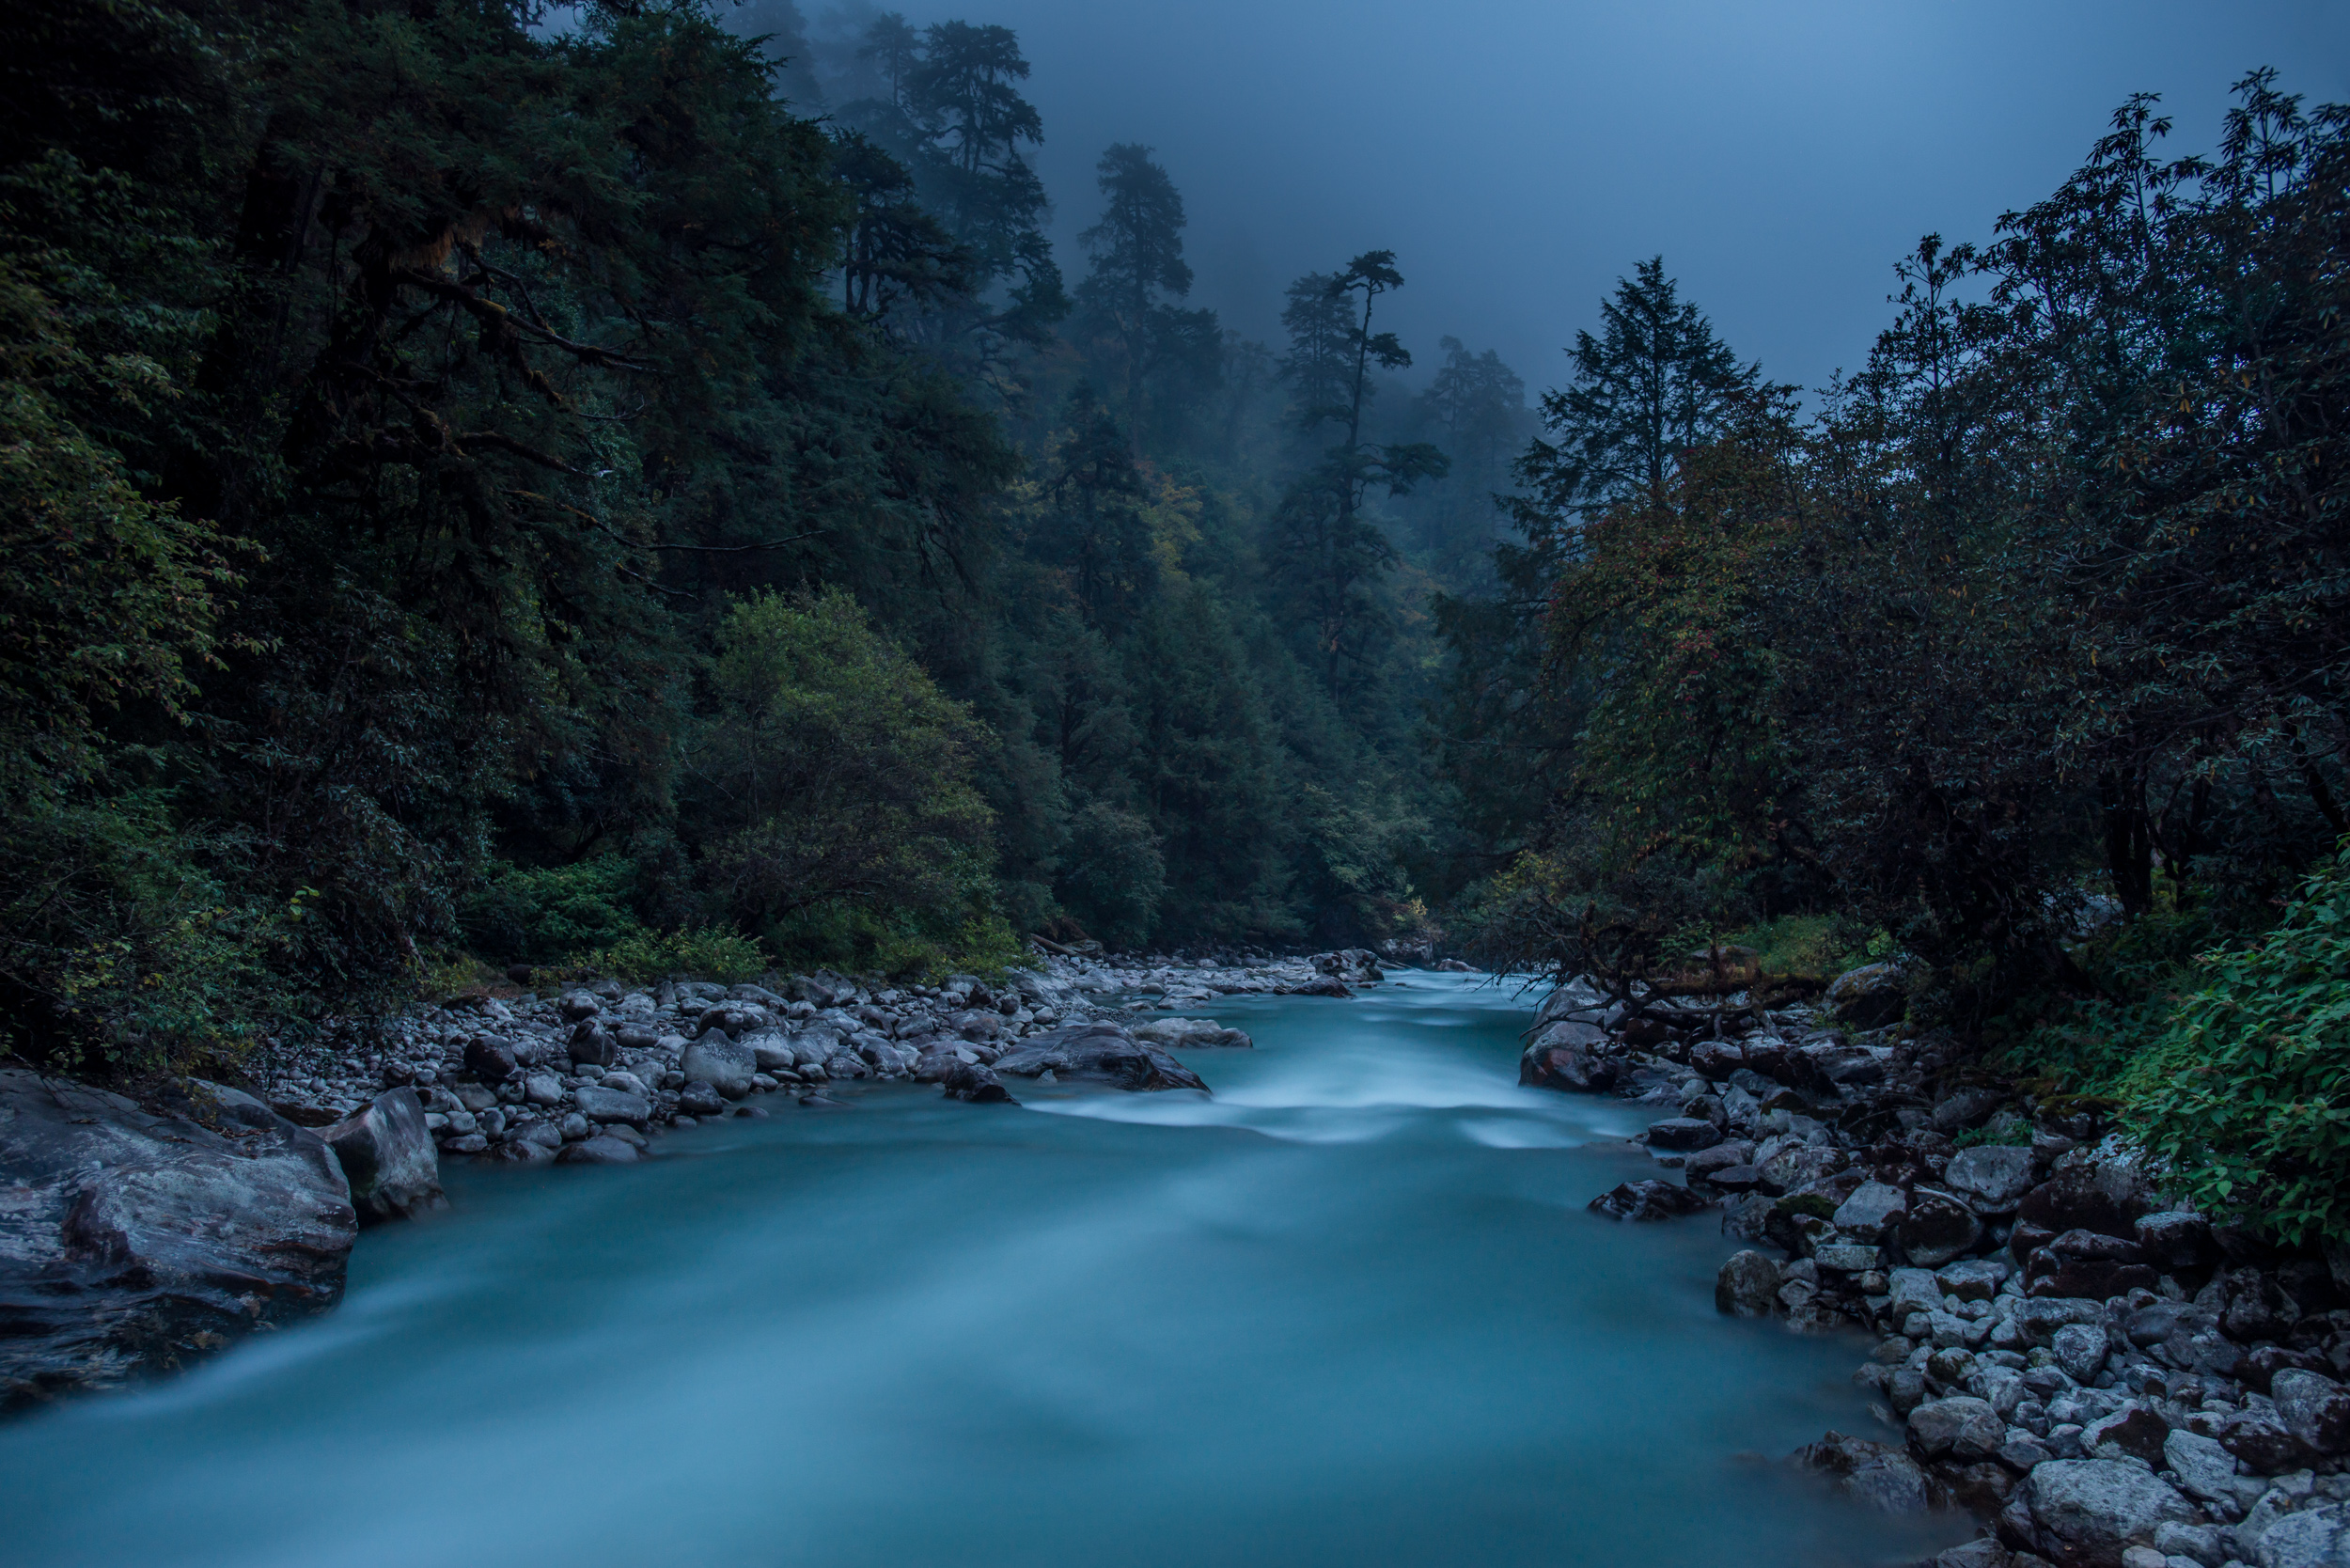 Langtang Khola near the little village of Riverside on a misty evening in the Langtang region of Nepal